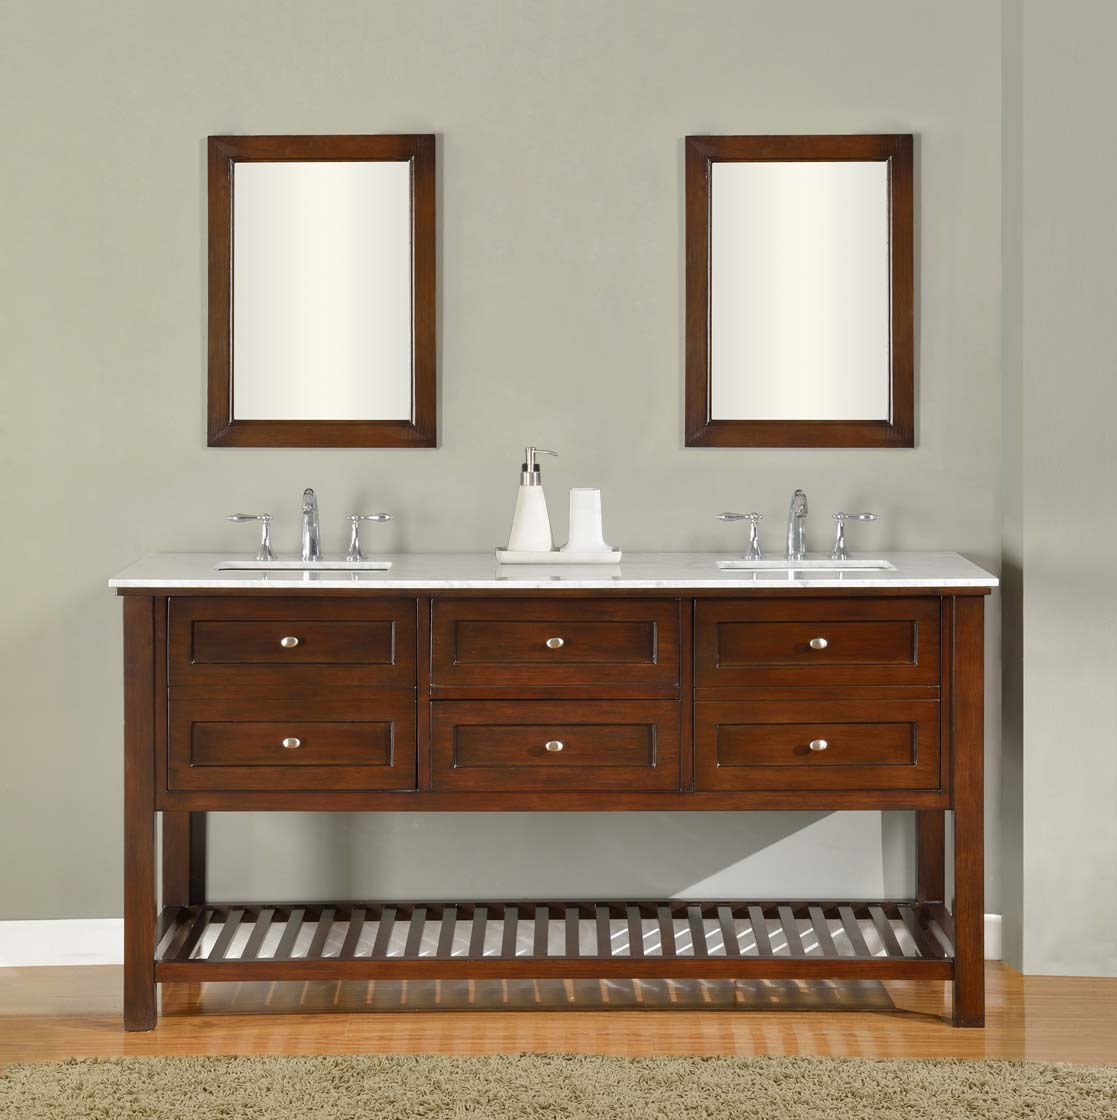 Bathroom Sink Cabinet Ideas: 70 Espresso Mission Spa Double Vanity Sink Cabinet With Carrera Bathroom Sink Cabinet Ideas